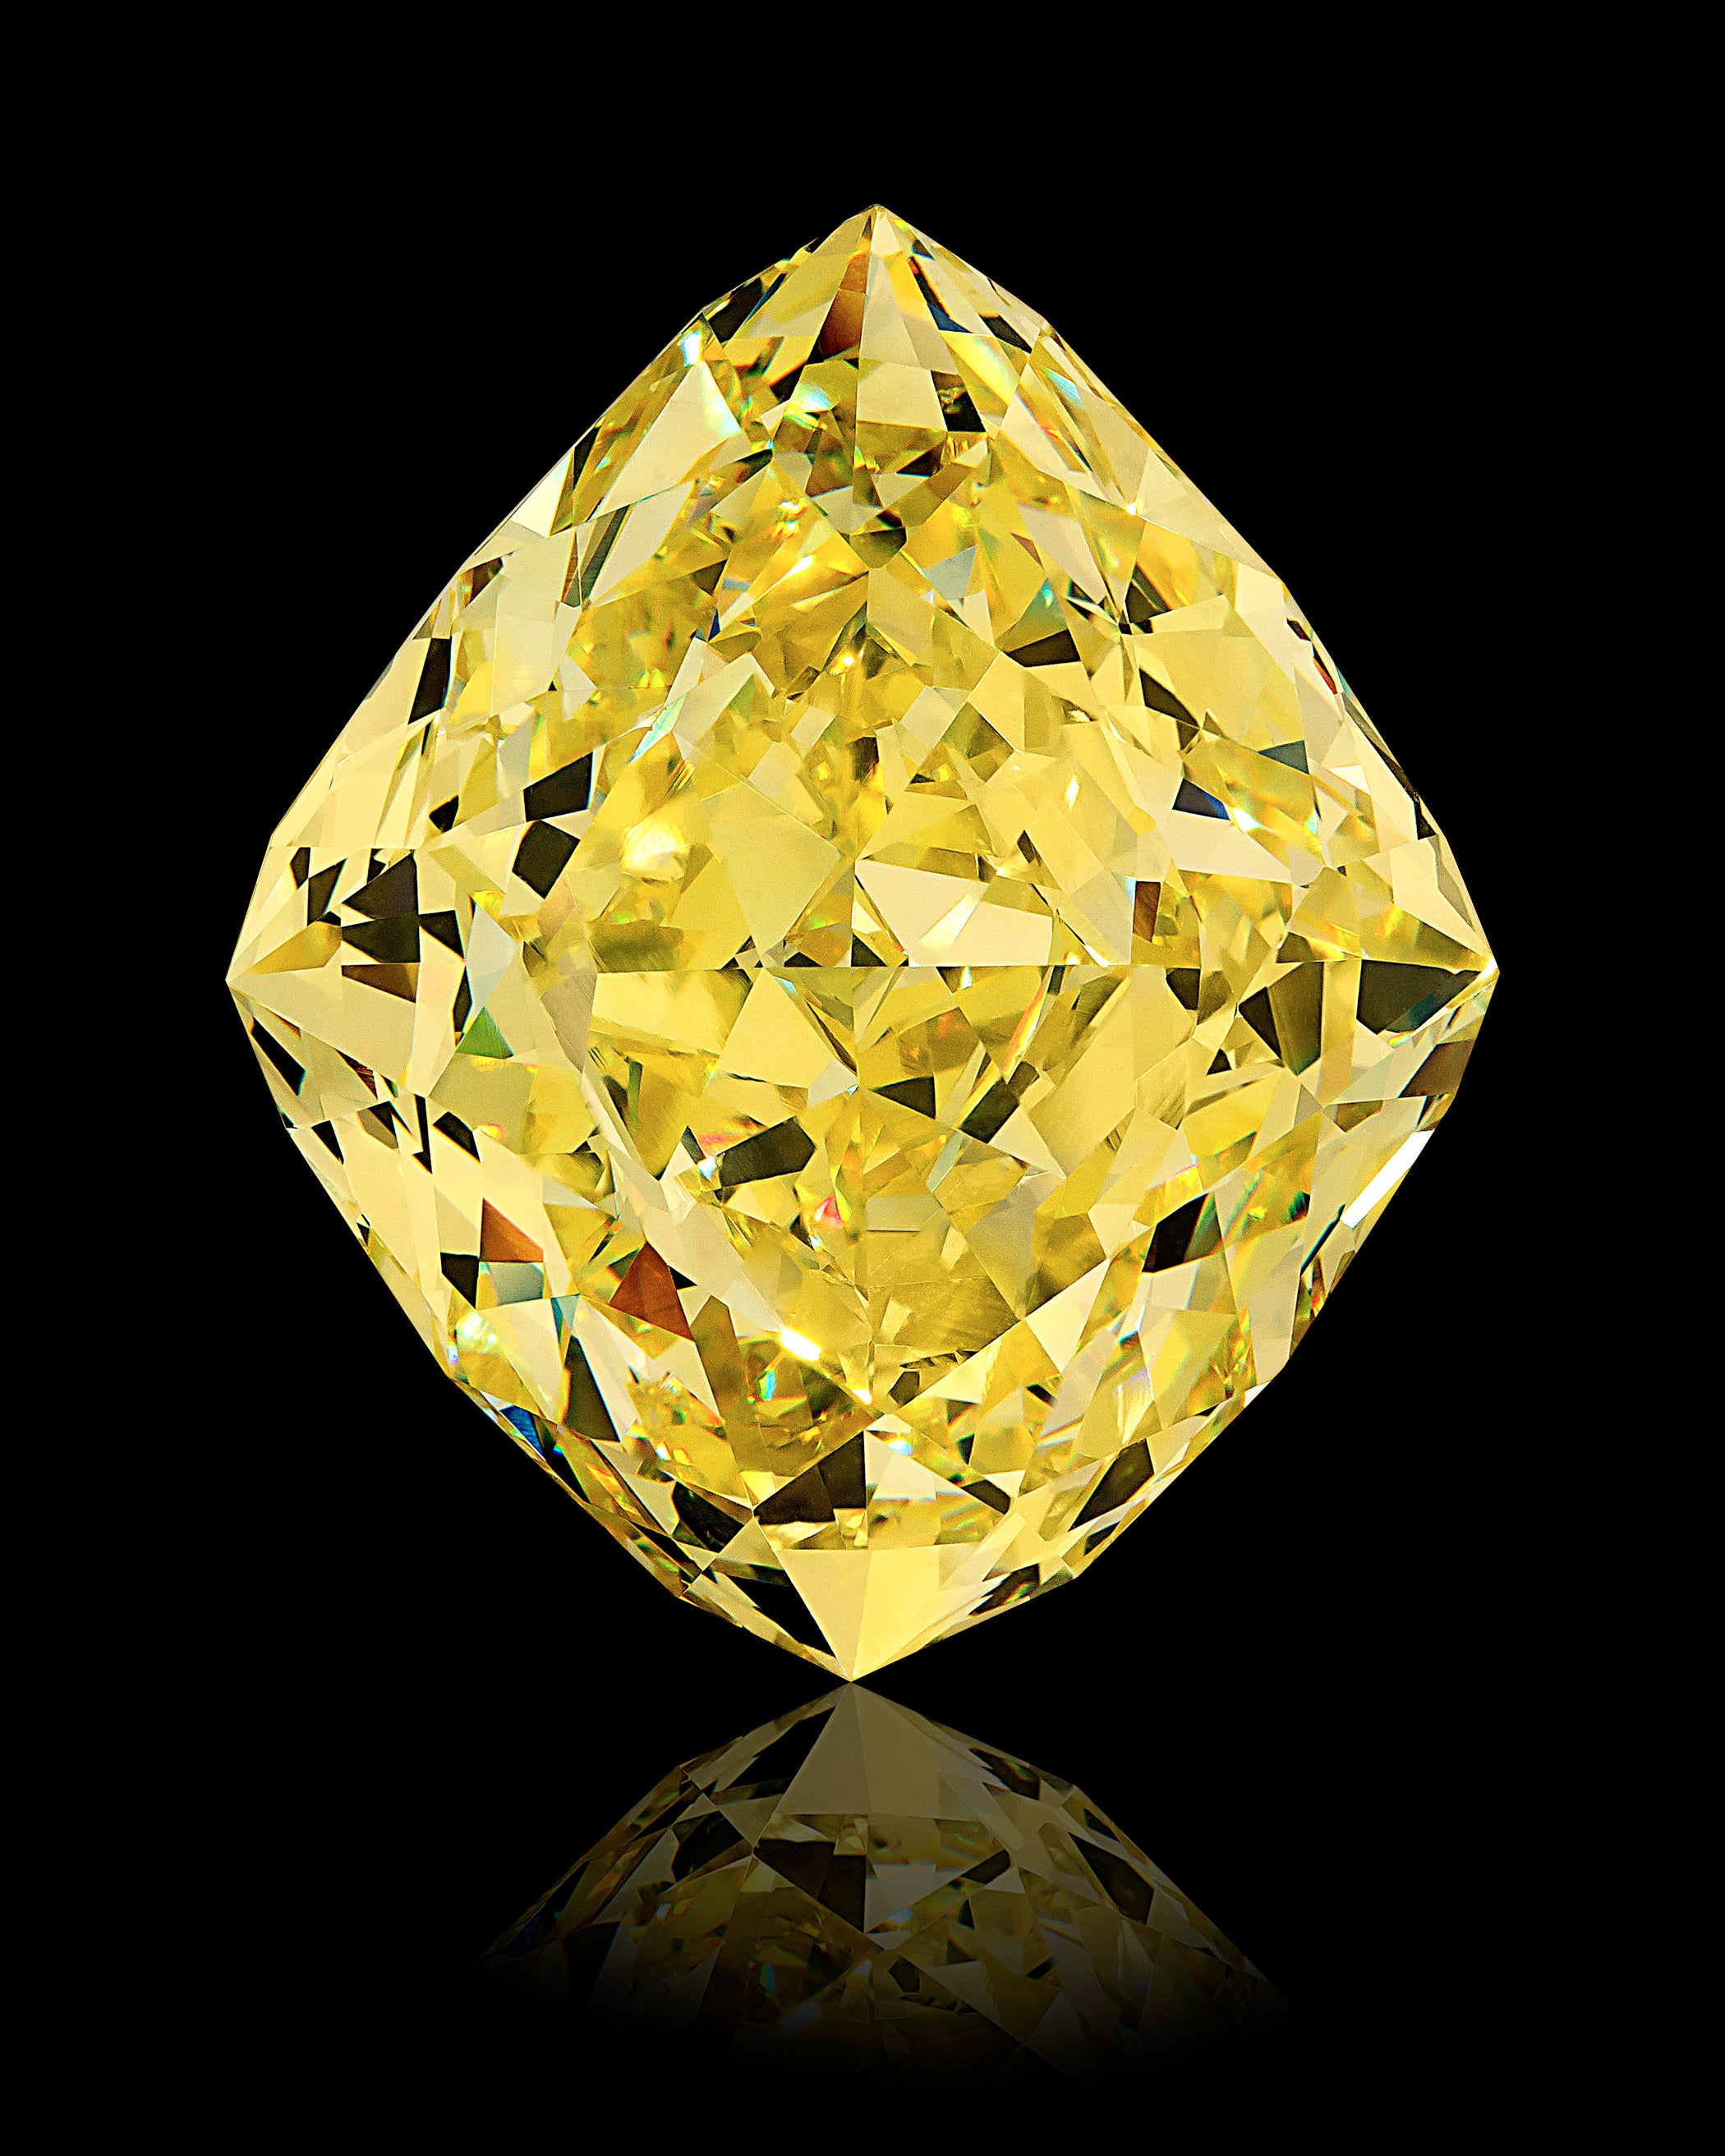 collection main singapore diamond golden jubilee time october by and at events classic white luxury diamonds gold rare dazzling renee happening jewelleries lr yellow festival jewelfest jewellery jewellers necklace jewel